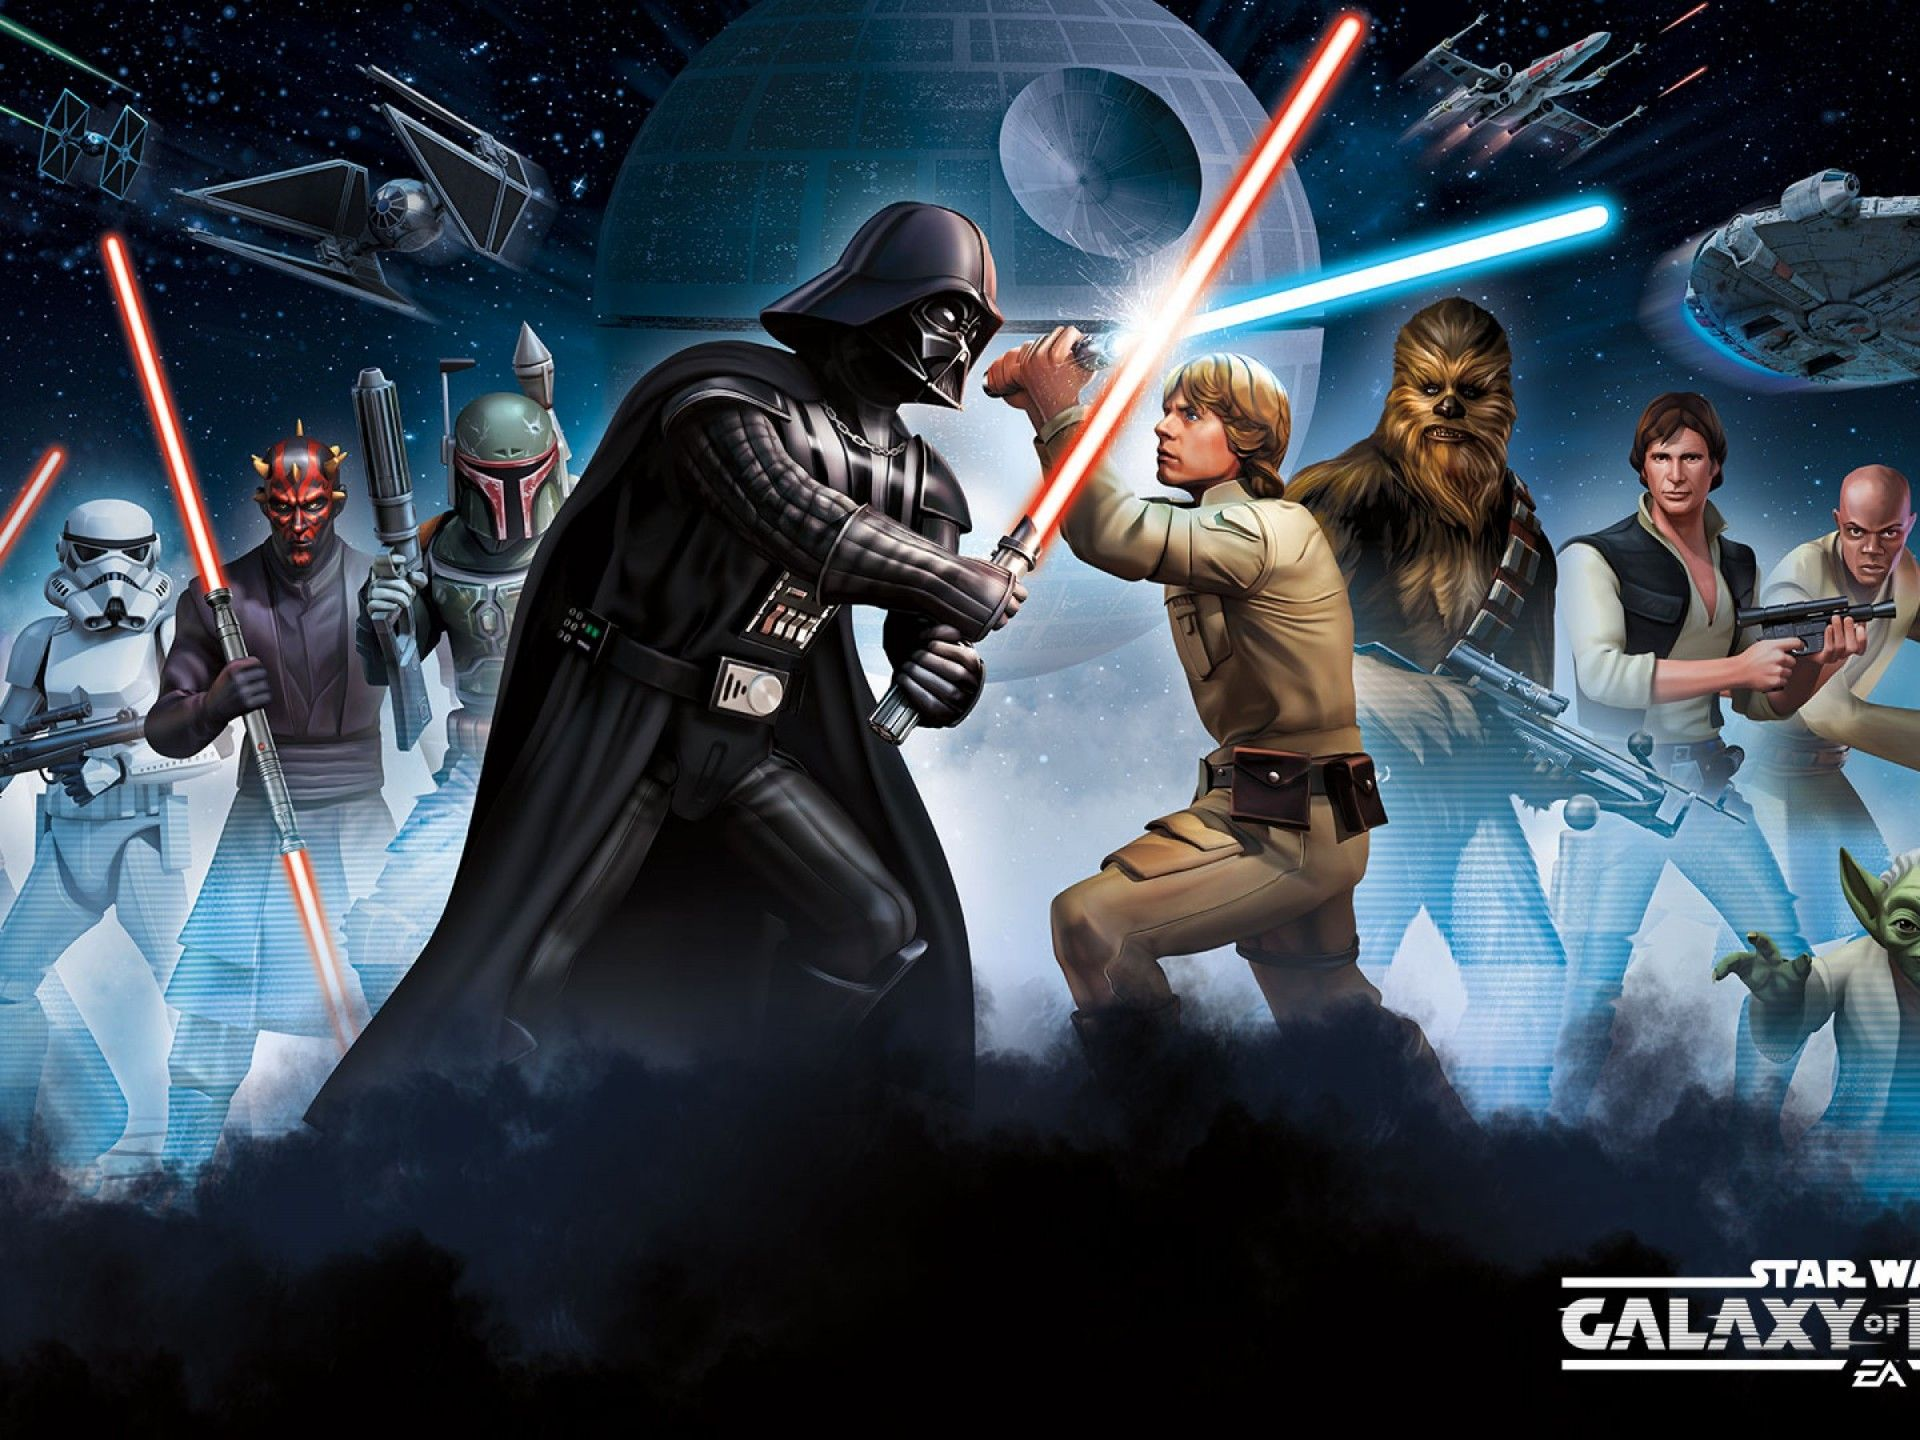 Star Wars Galaxy of Heroes Cheats Hack Free Crystals and